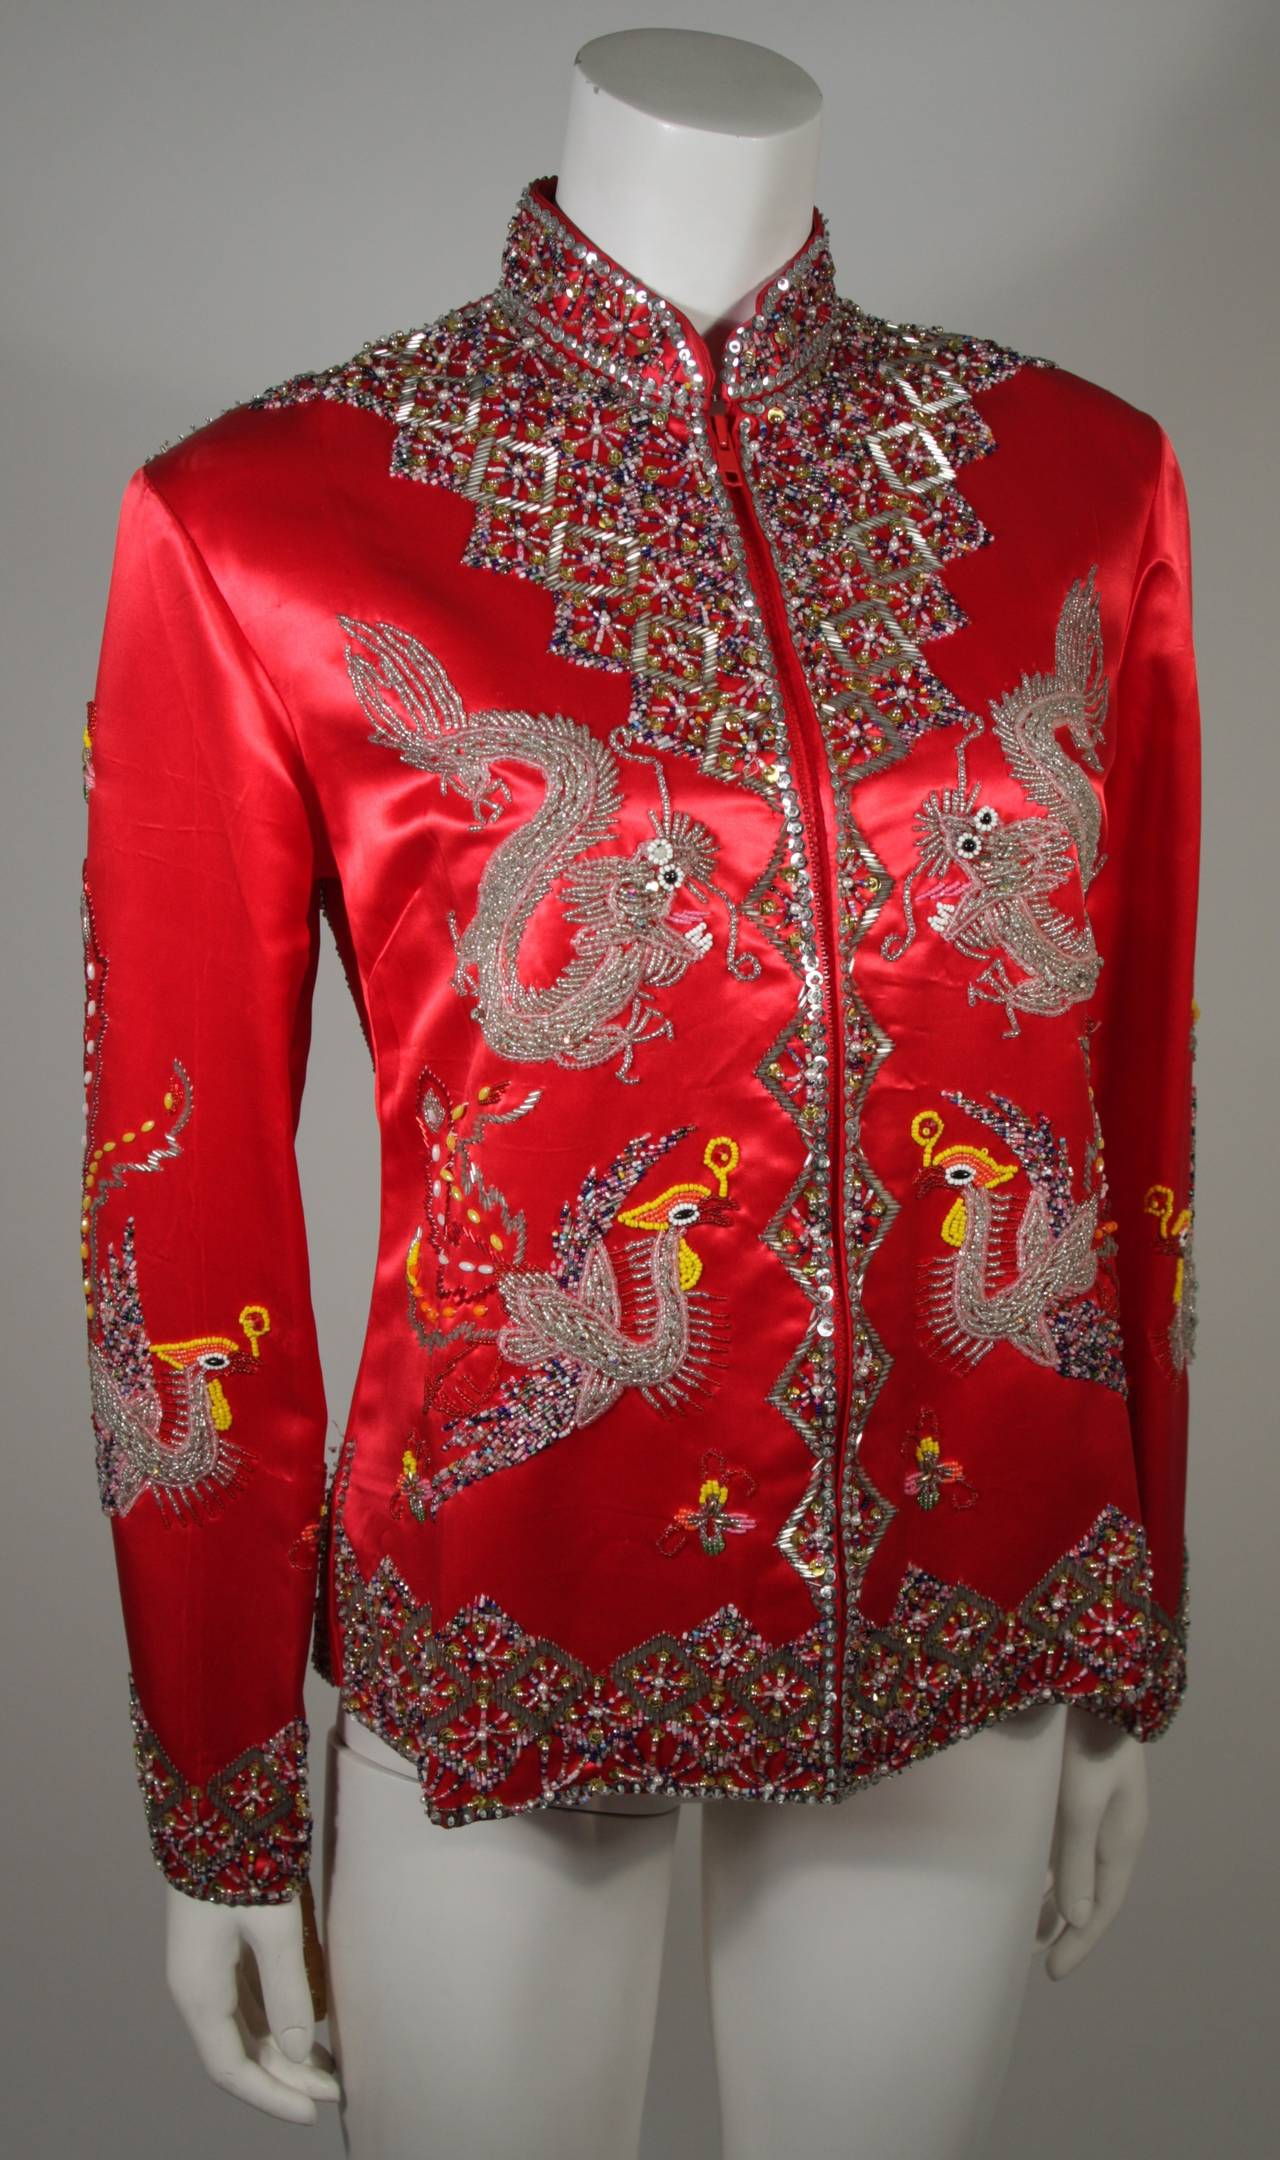 This Dynasty for Neiman Marcus jacket is composed of red embroidered silk that features hand beaded Dragon and Phoenix designs with sequin accents. There is a center front zipper. Comes with original tags and is in excellent condition.